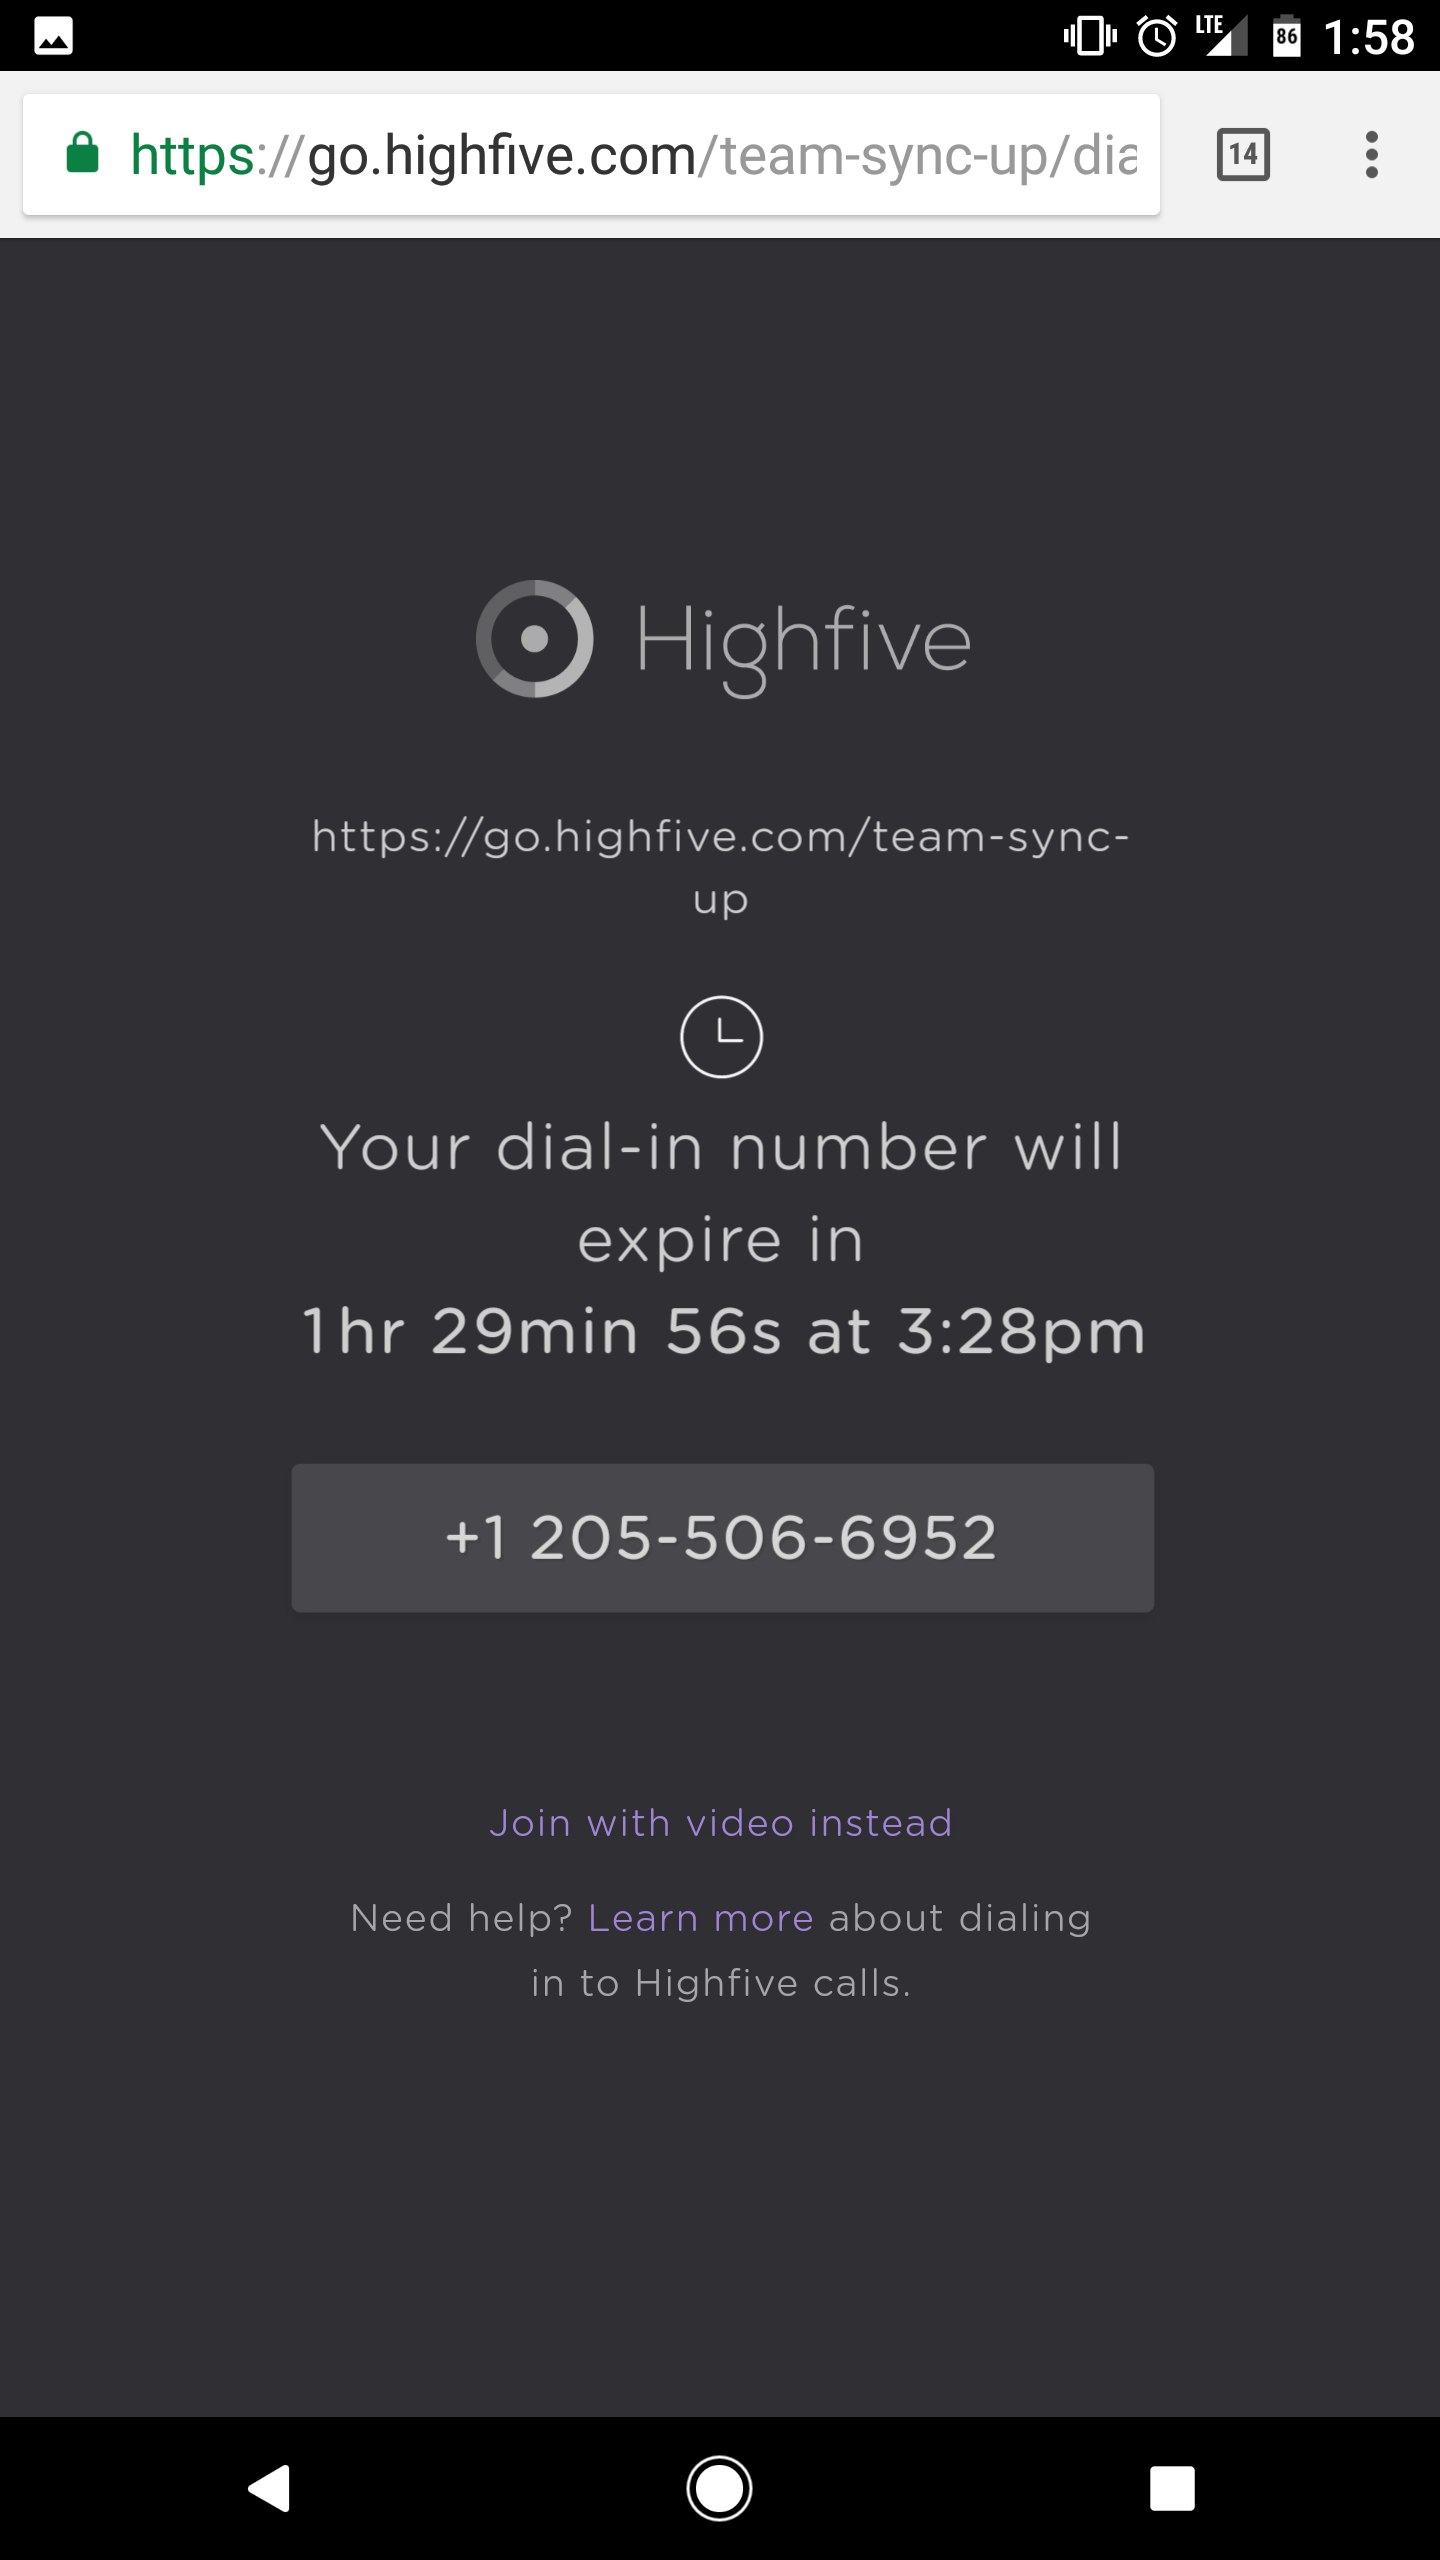 02_Mobile_Highfive_Dial-in_Invite.png